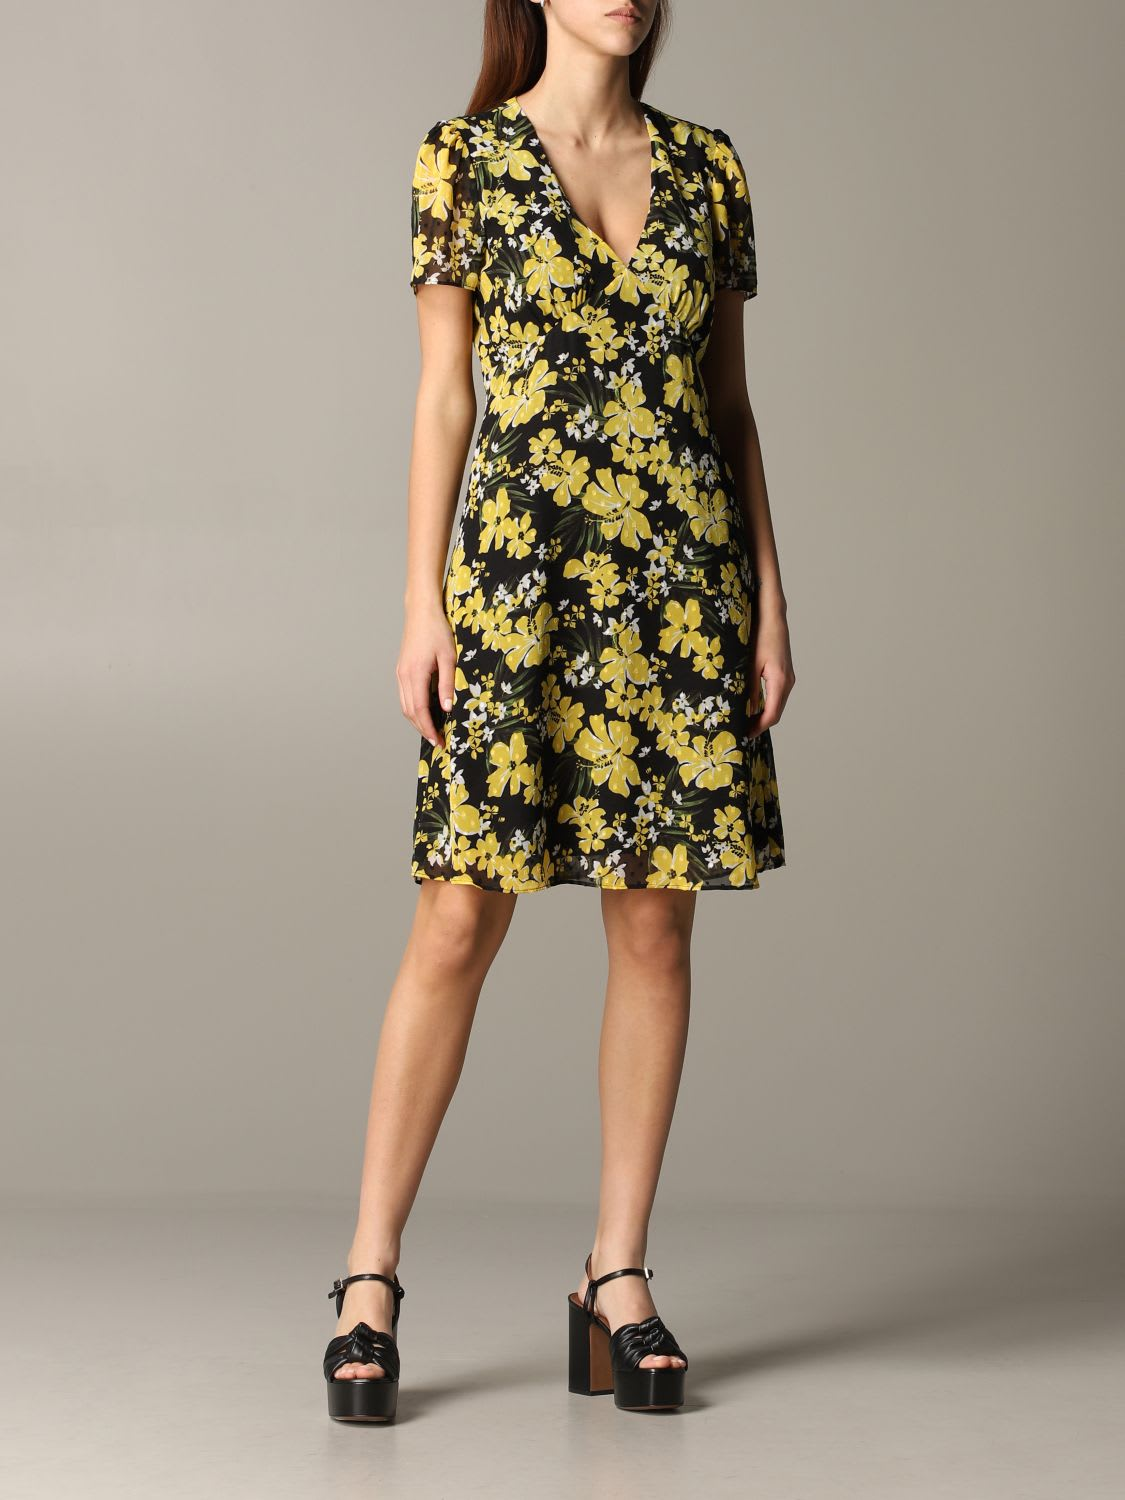 Buy Michael Michael Kors Dress Michael Michael Kors Floral Pattern Dress online, shop MICHAEL Michael Kors with free shipping